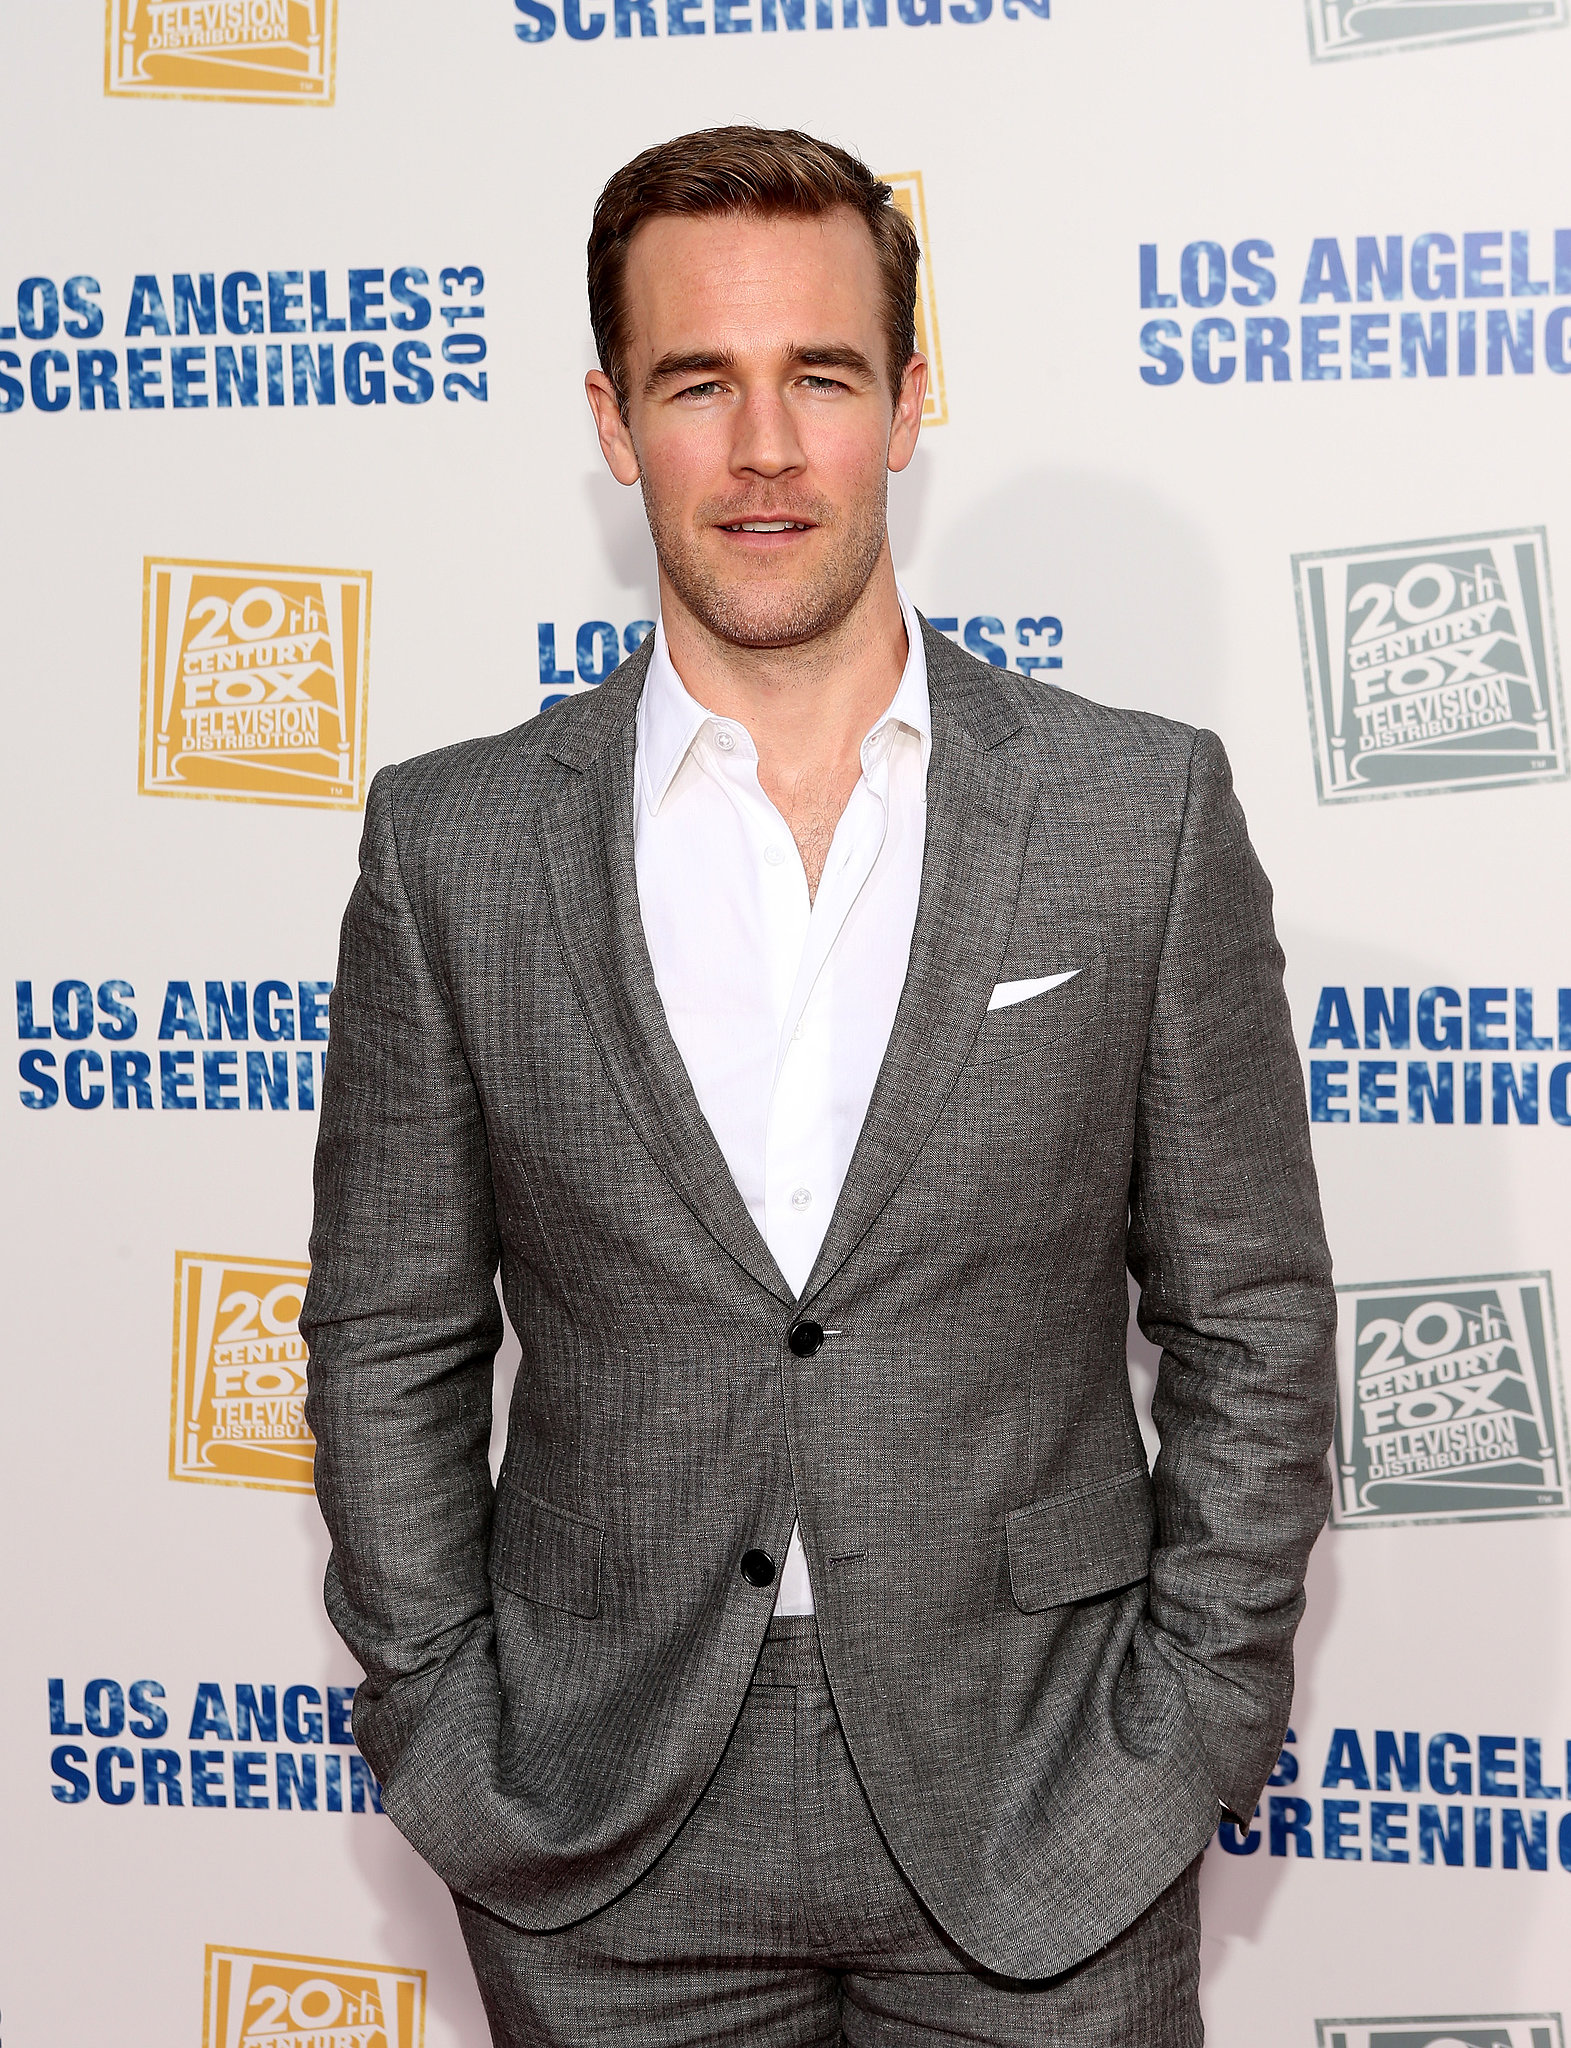 James van der beek desnudo